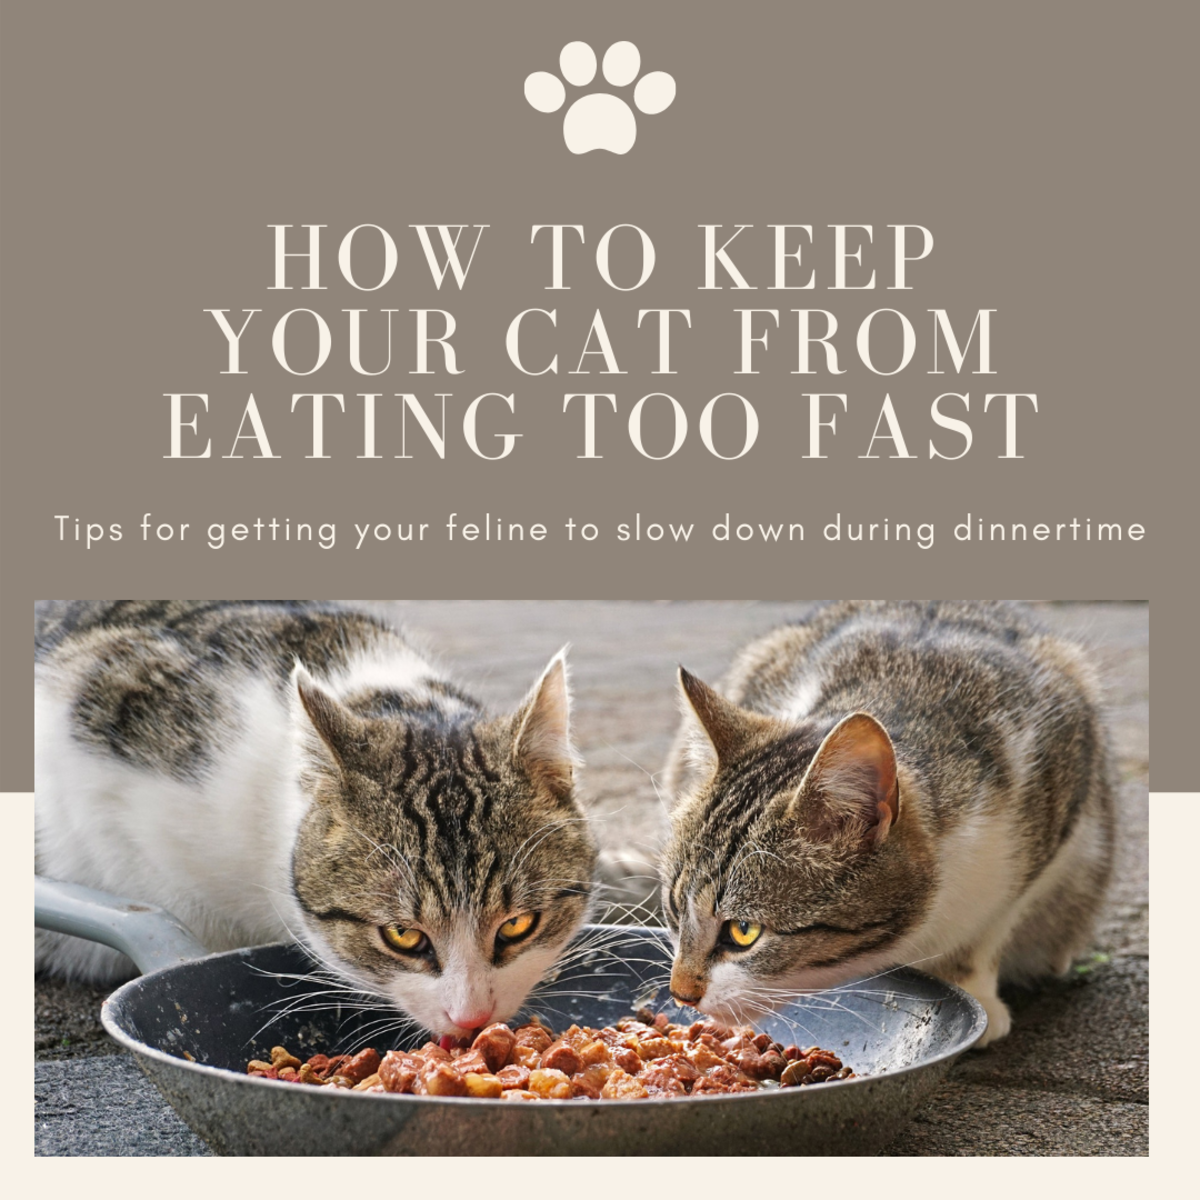 This article will provide some tips and tricks for how to get your cat to not eat so fast during mealtimes.